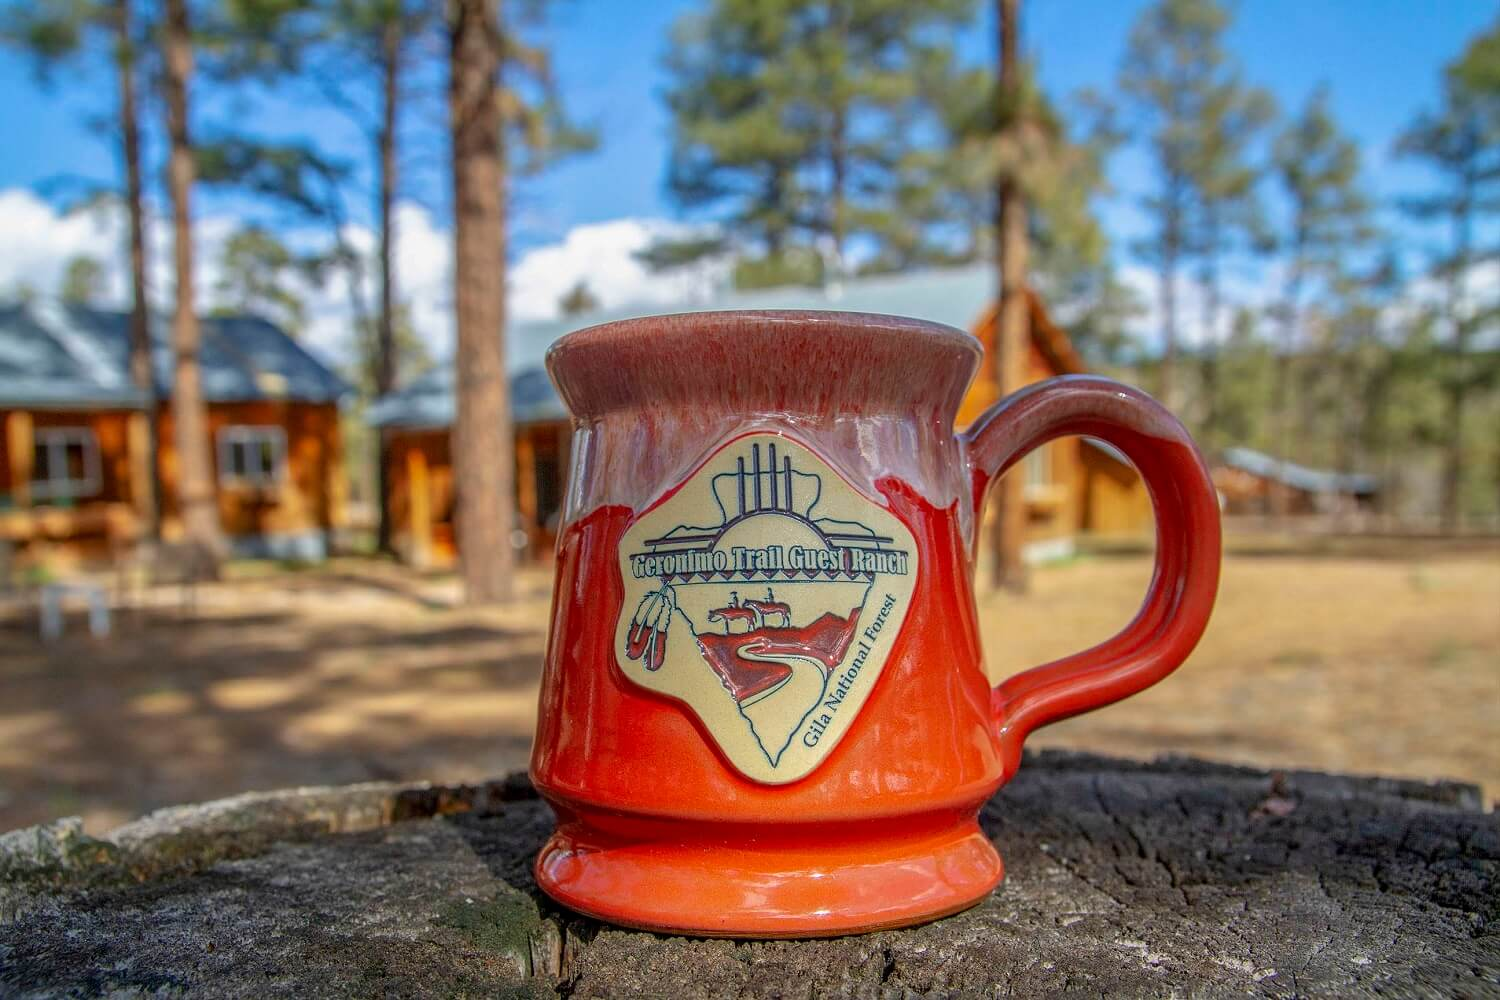 Geronimo Trail Guest Ranch Mug - Orange